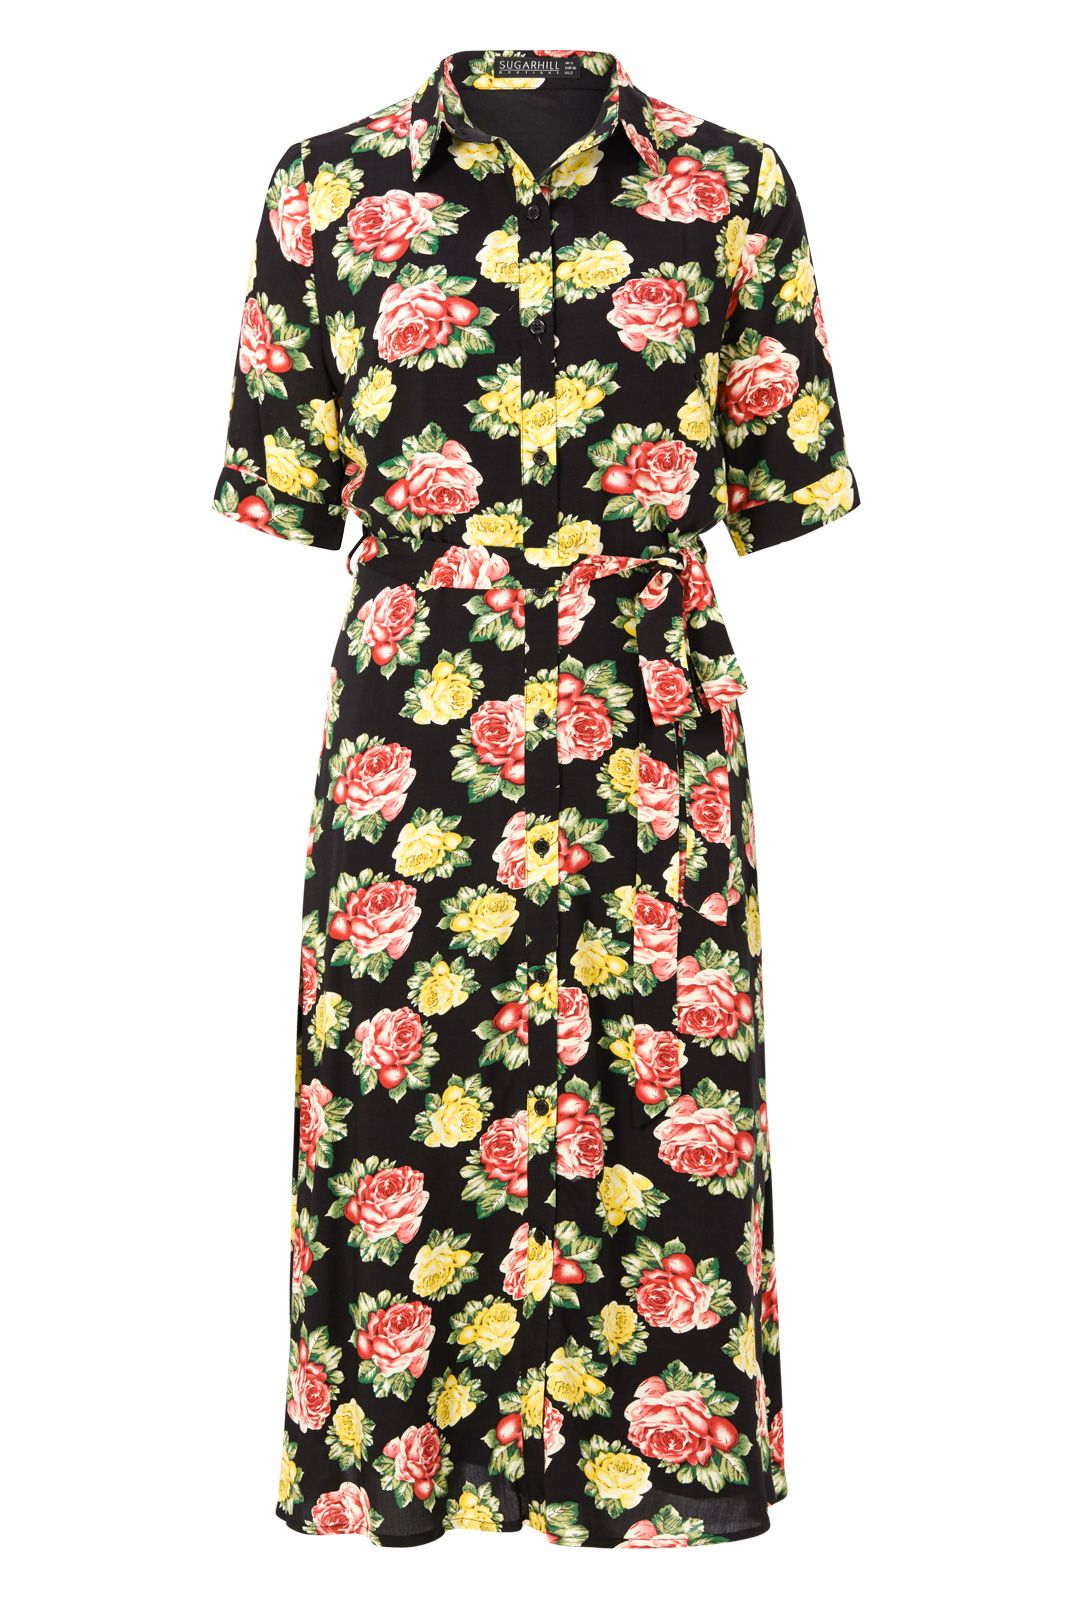 Sugarhill Boutique Faye Floral Midi Shirt Dress, Black Multi